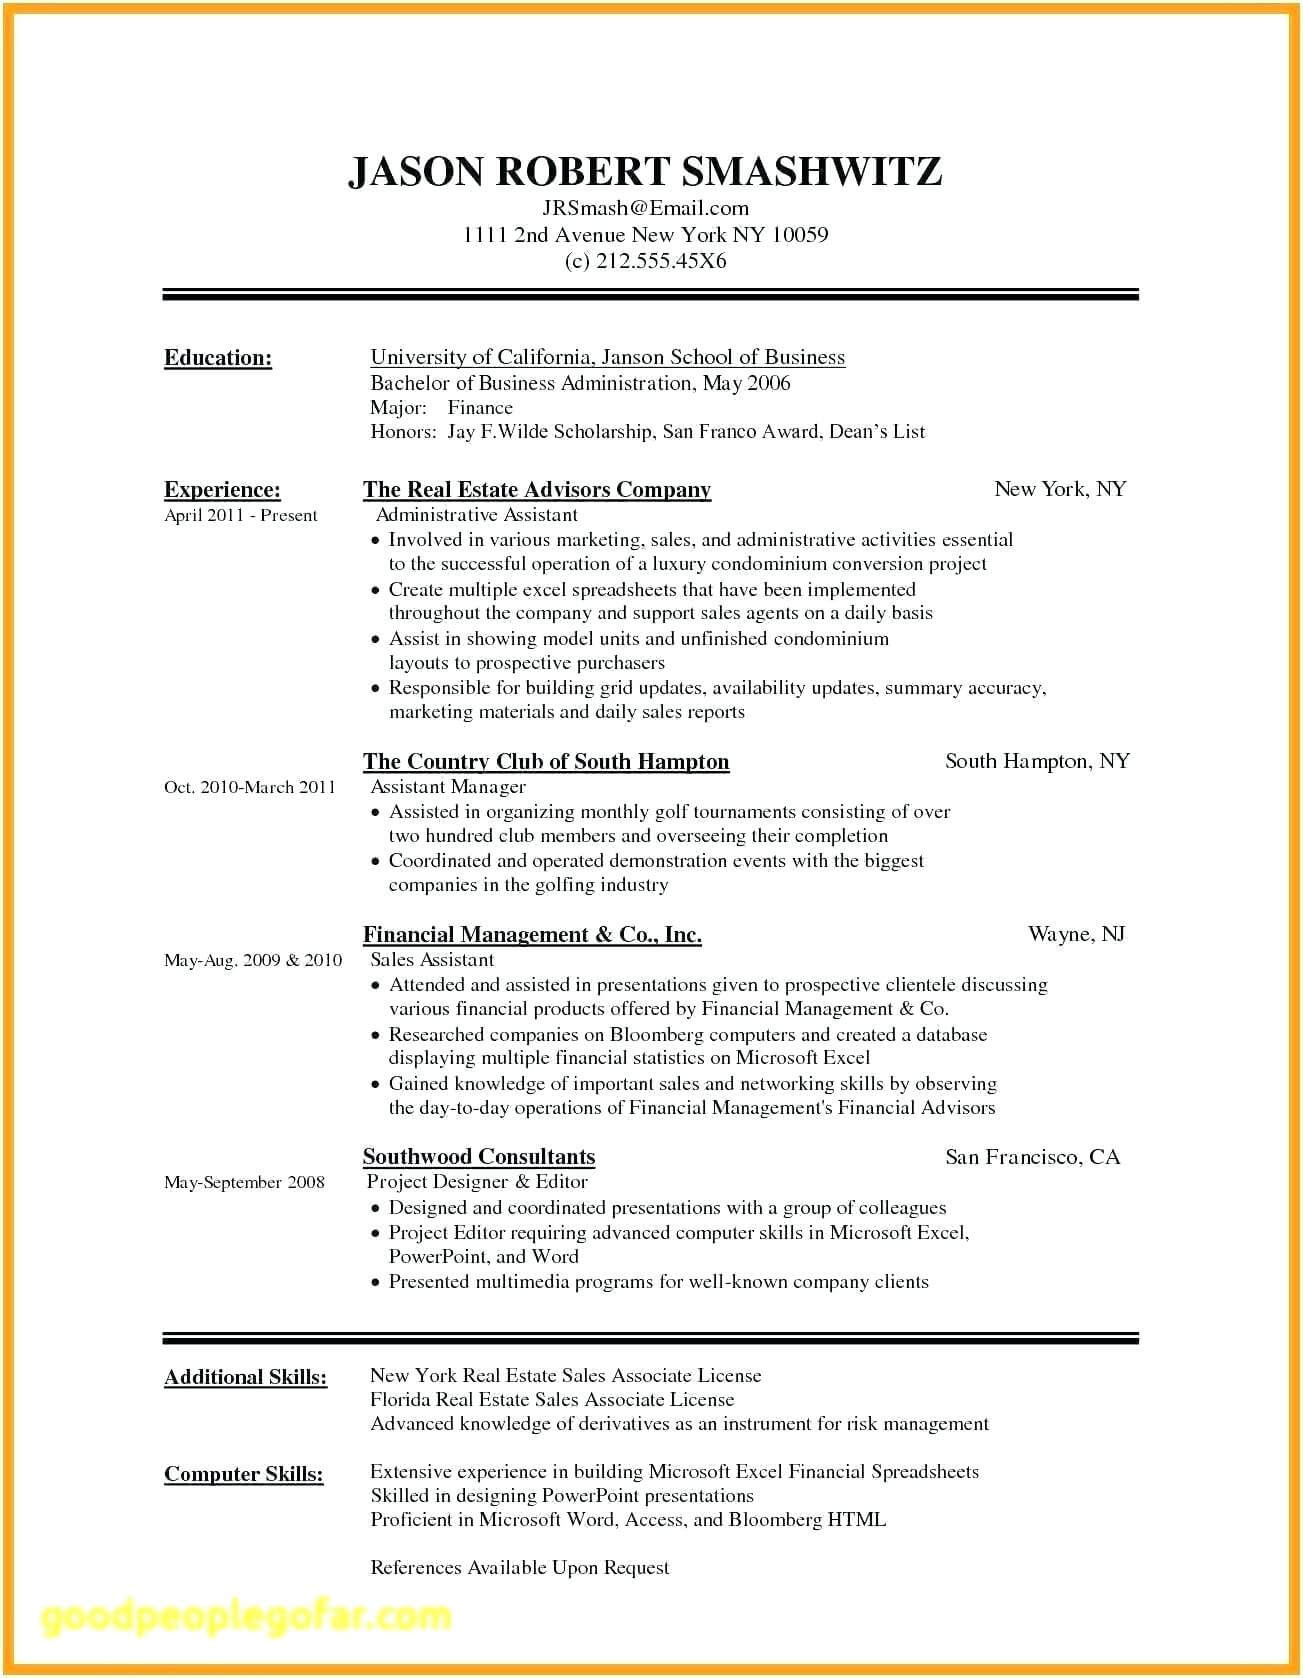 Job Resume Template Word Examples Work Order – Wovensheet.co Intended For Playbill Template Word